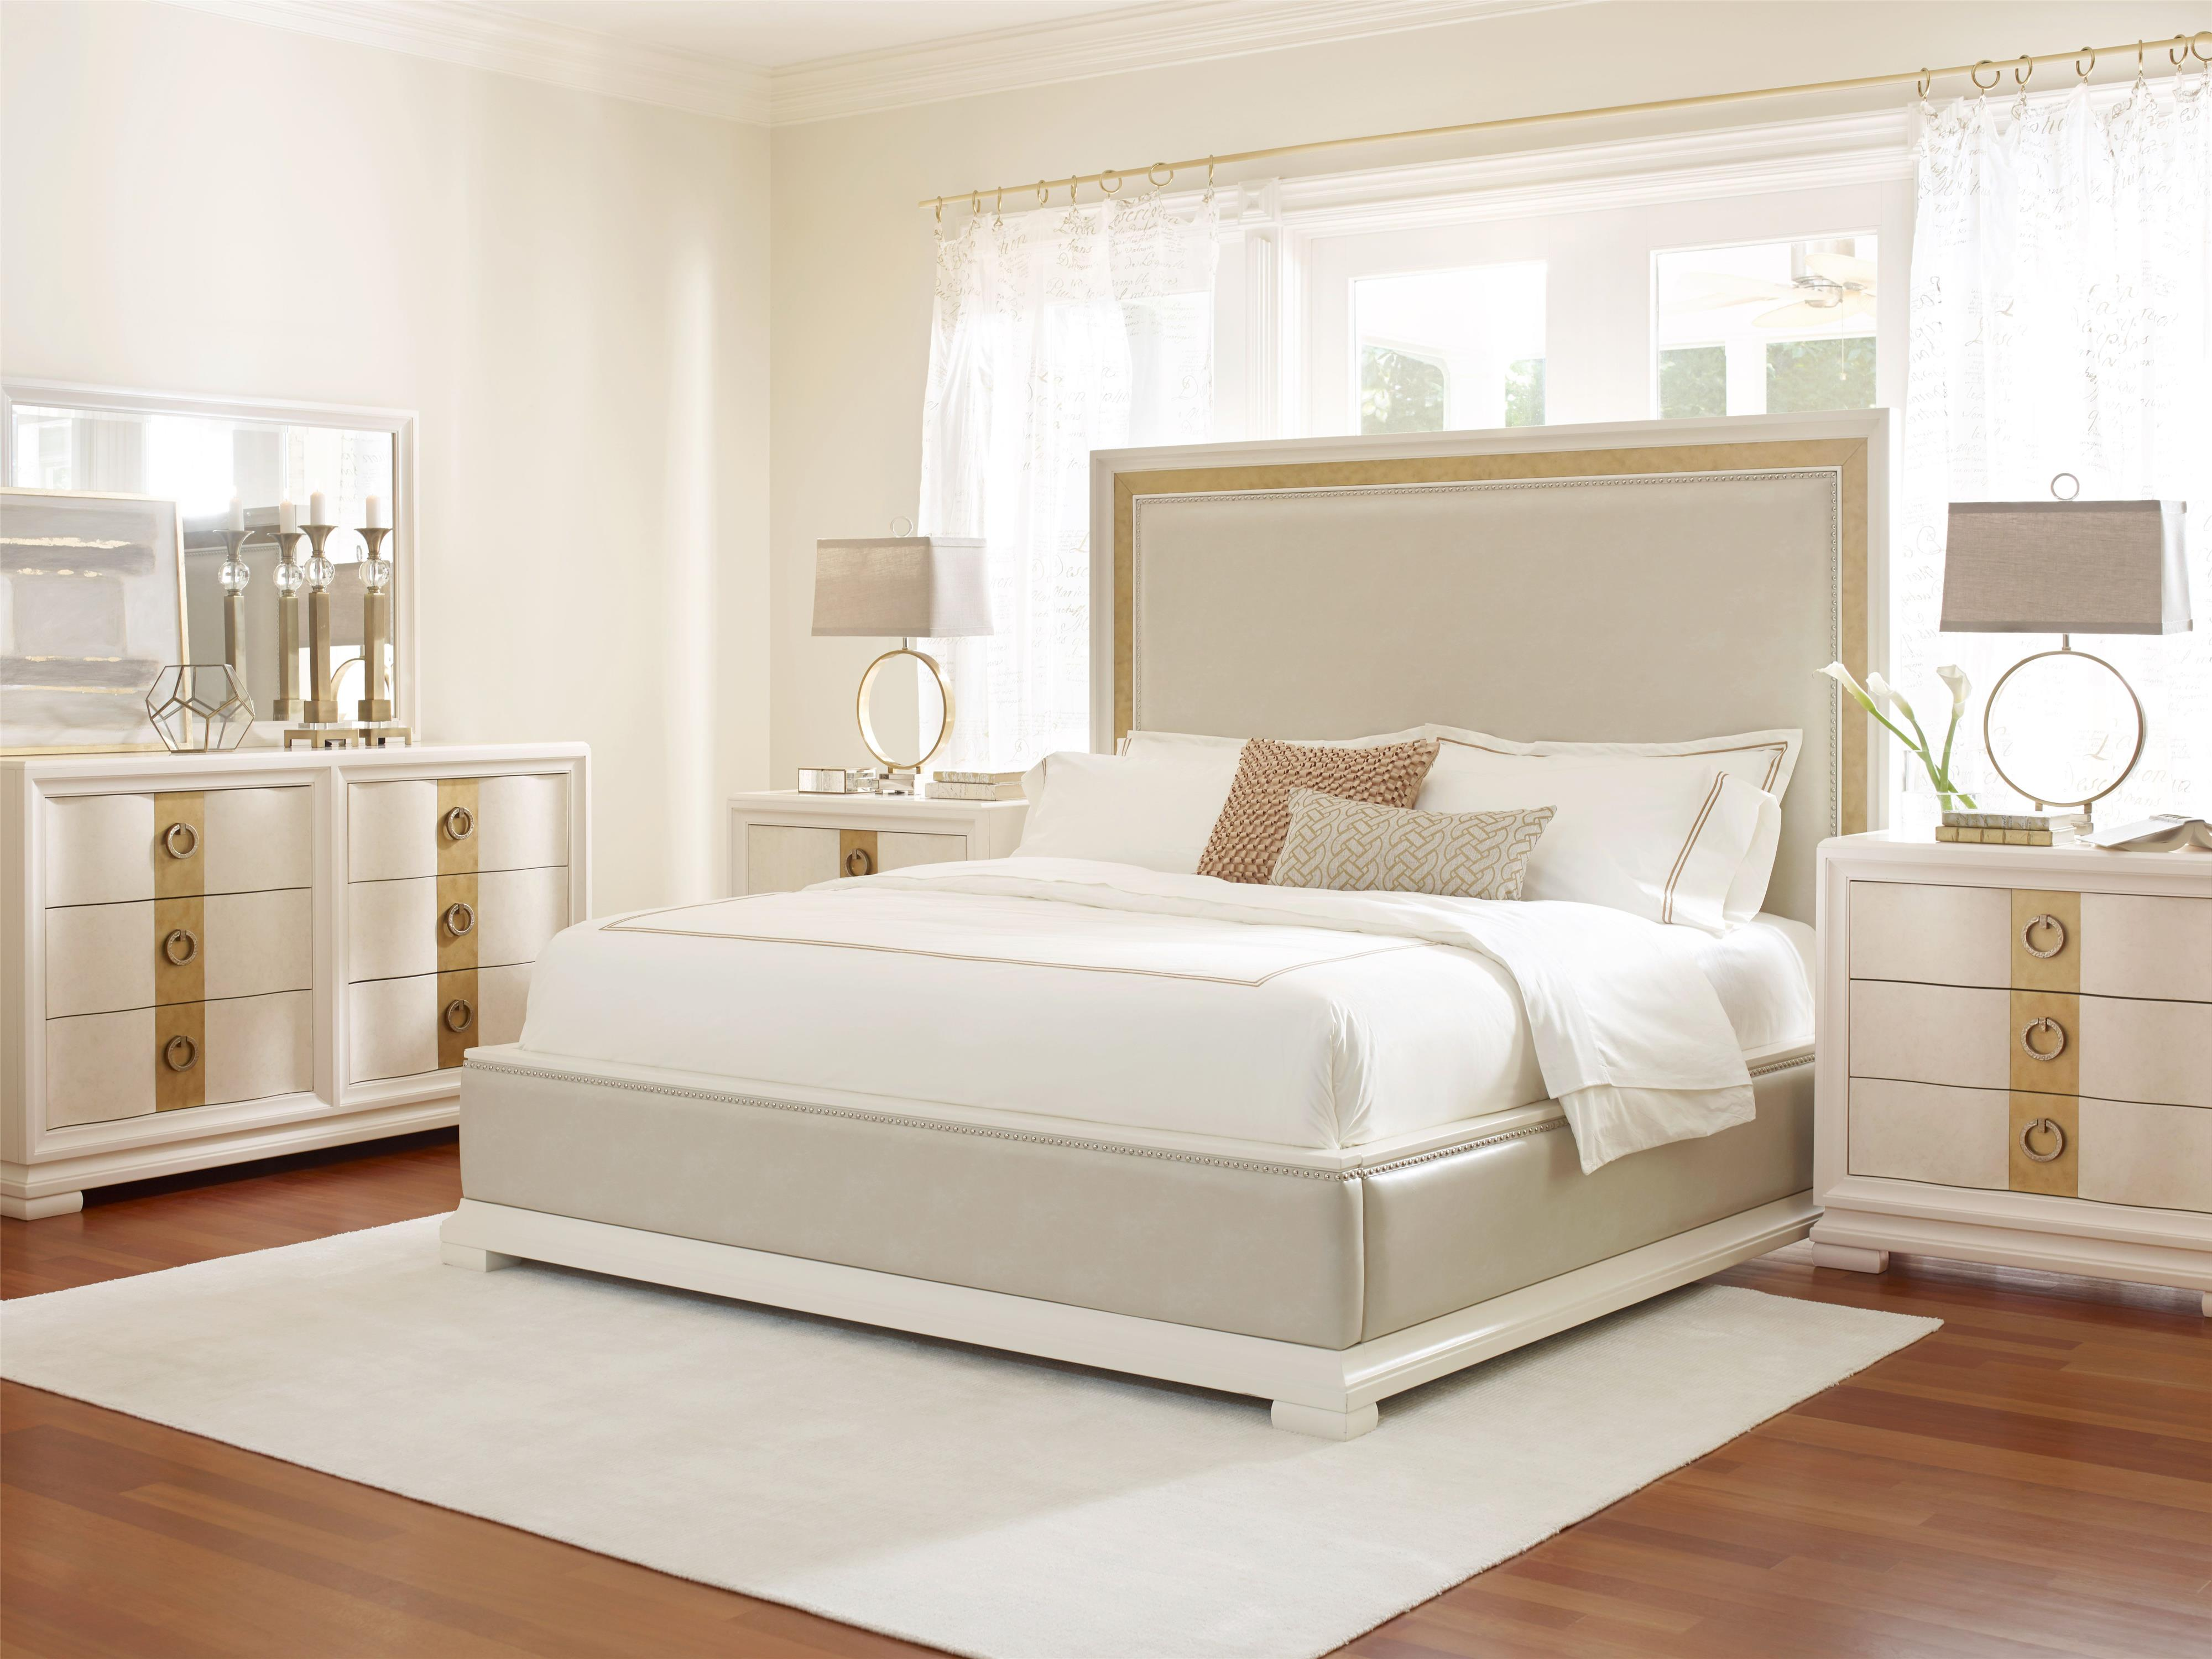 Legacy Classic Tower Suite Queen Bedroom Group - Item Number: 5010 Q Bedroom Group 3